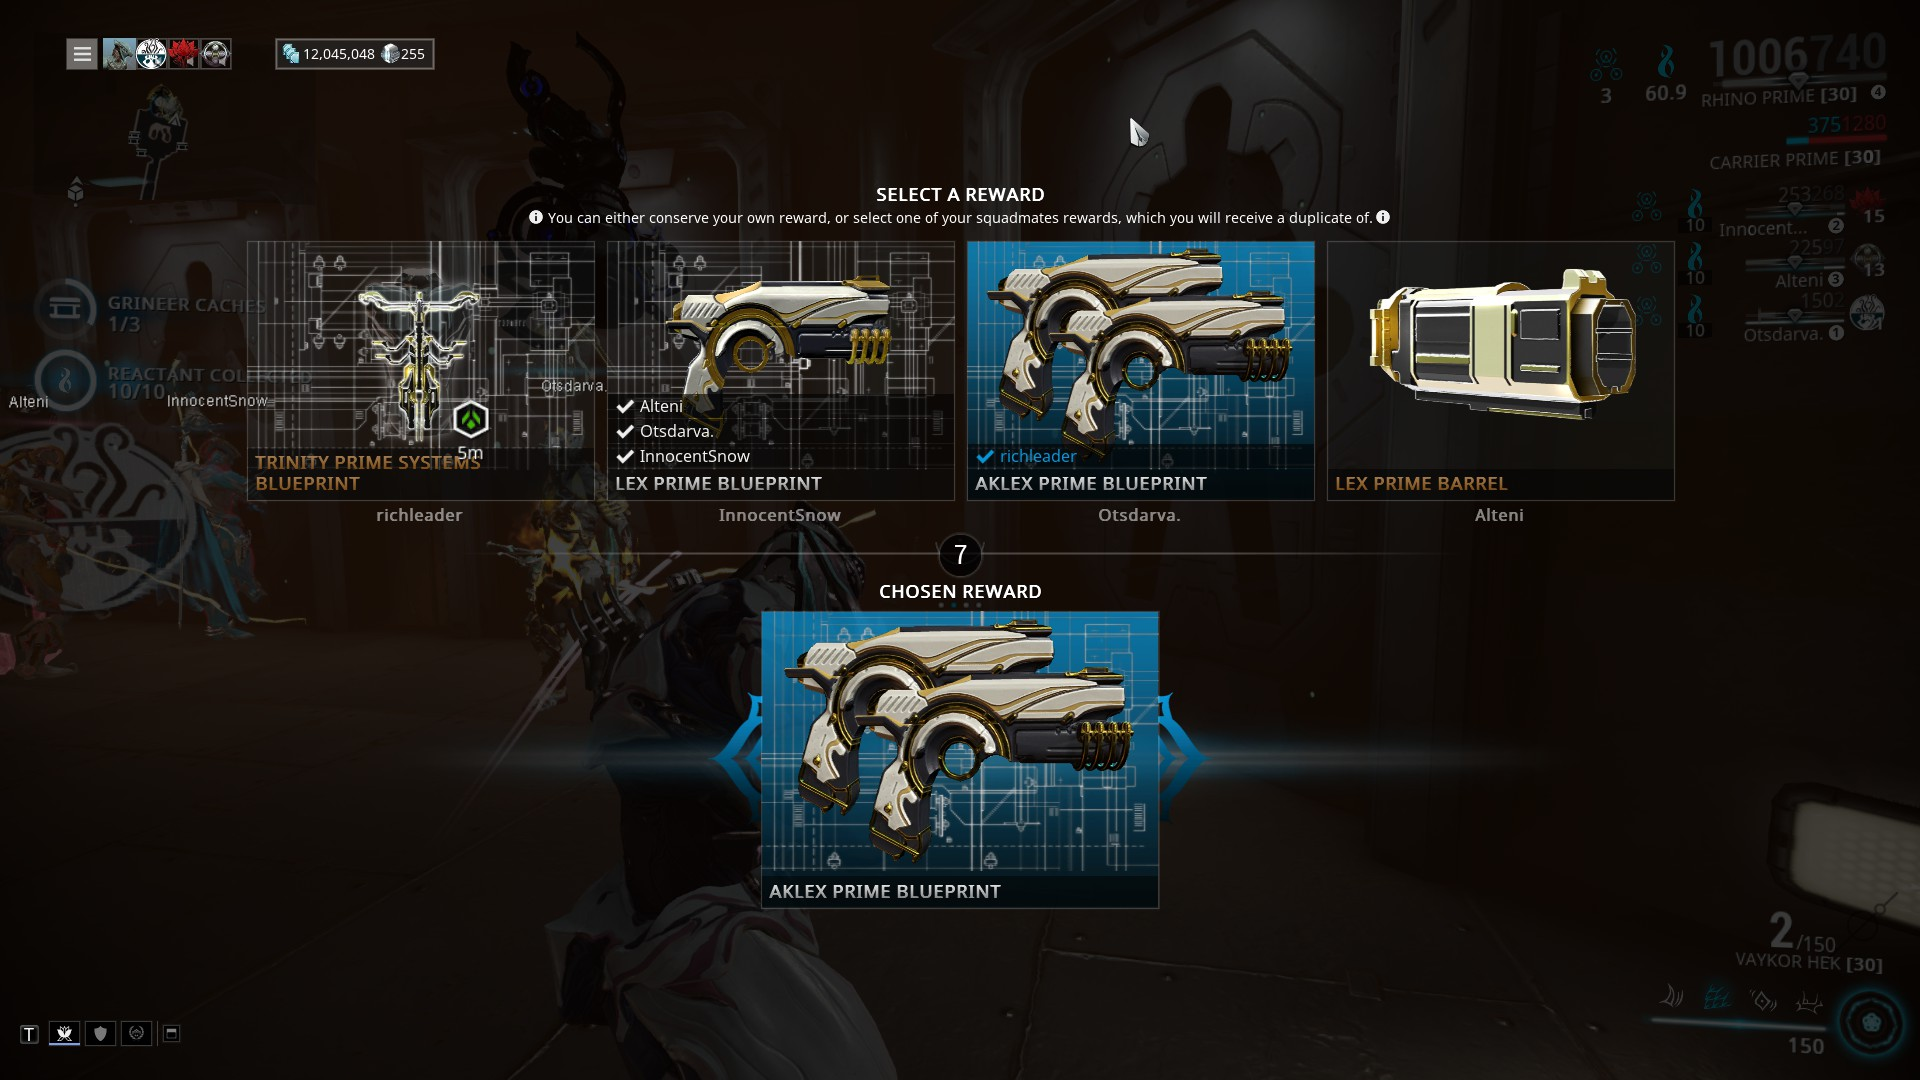 Warframe shrine of the eidolon ars technica openforum image malvernweather Gallery